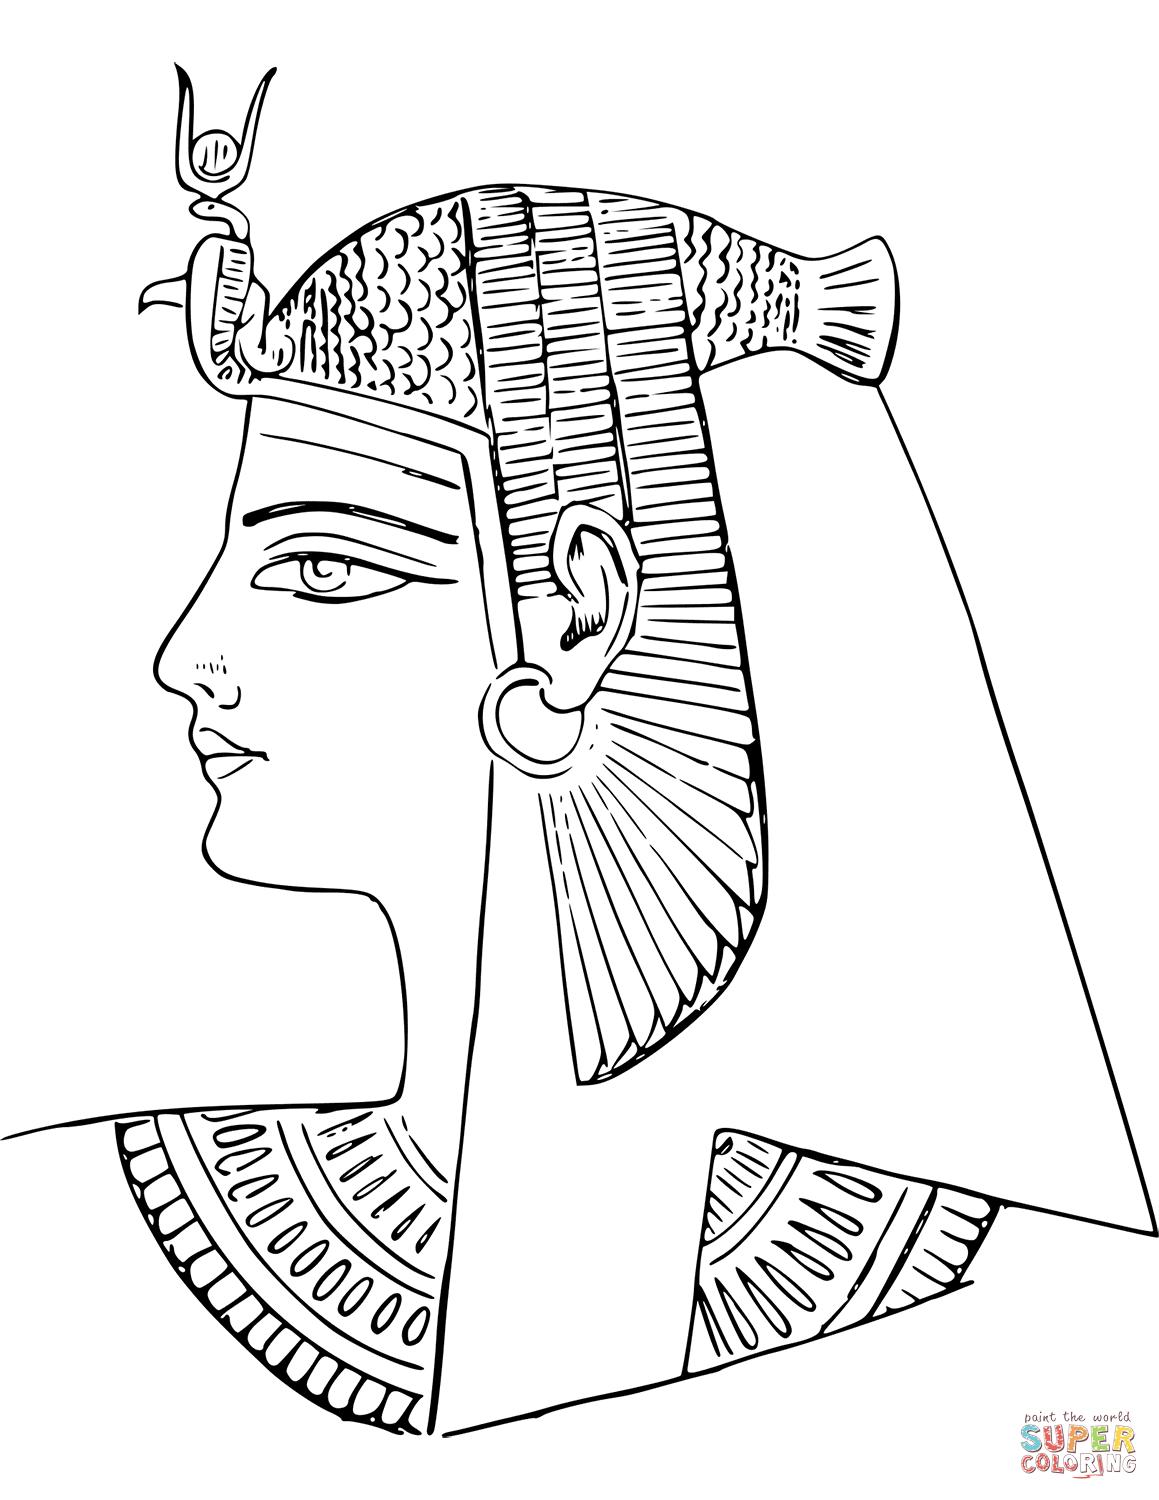 Egypt Clipart Coloring Page Egypt Coloring Page Transparent Free For Download On Webstockreview 2021